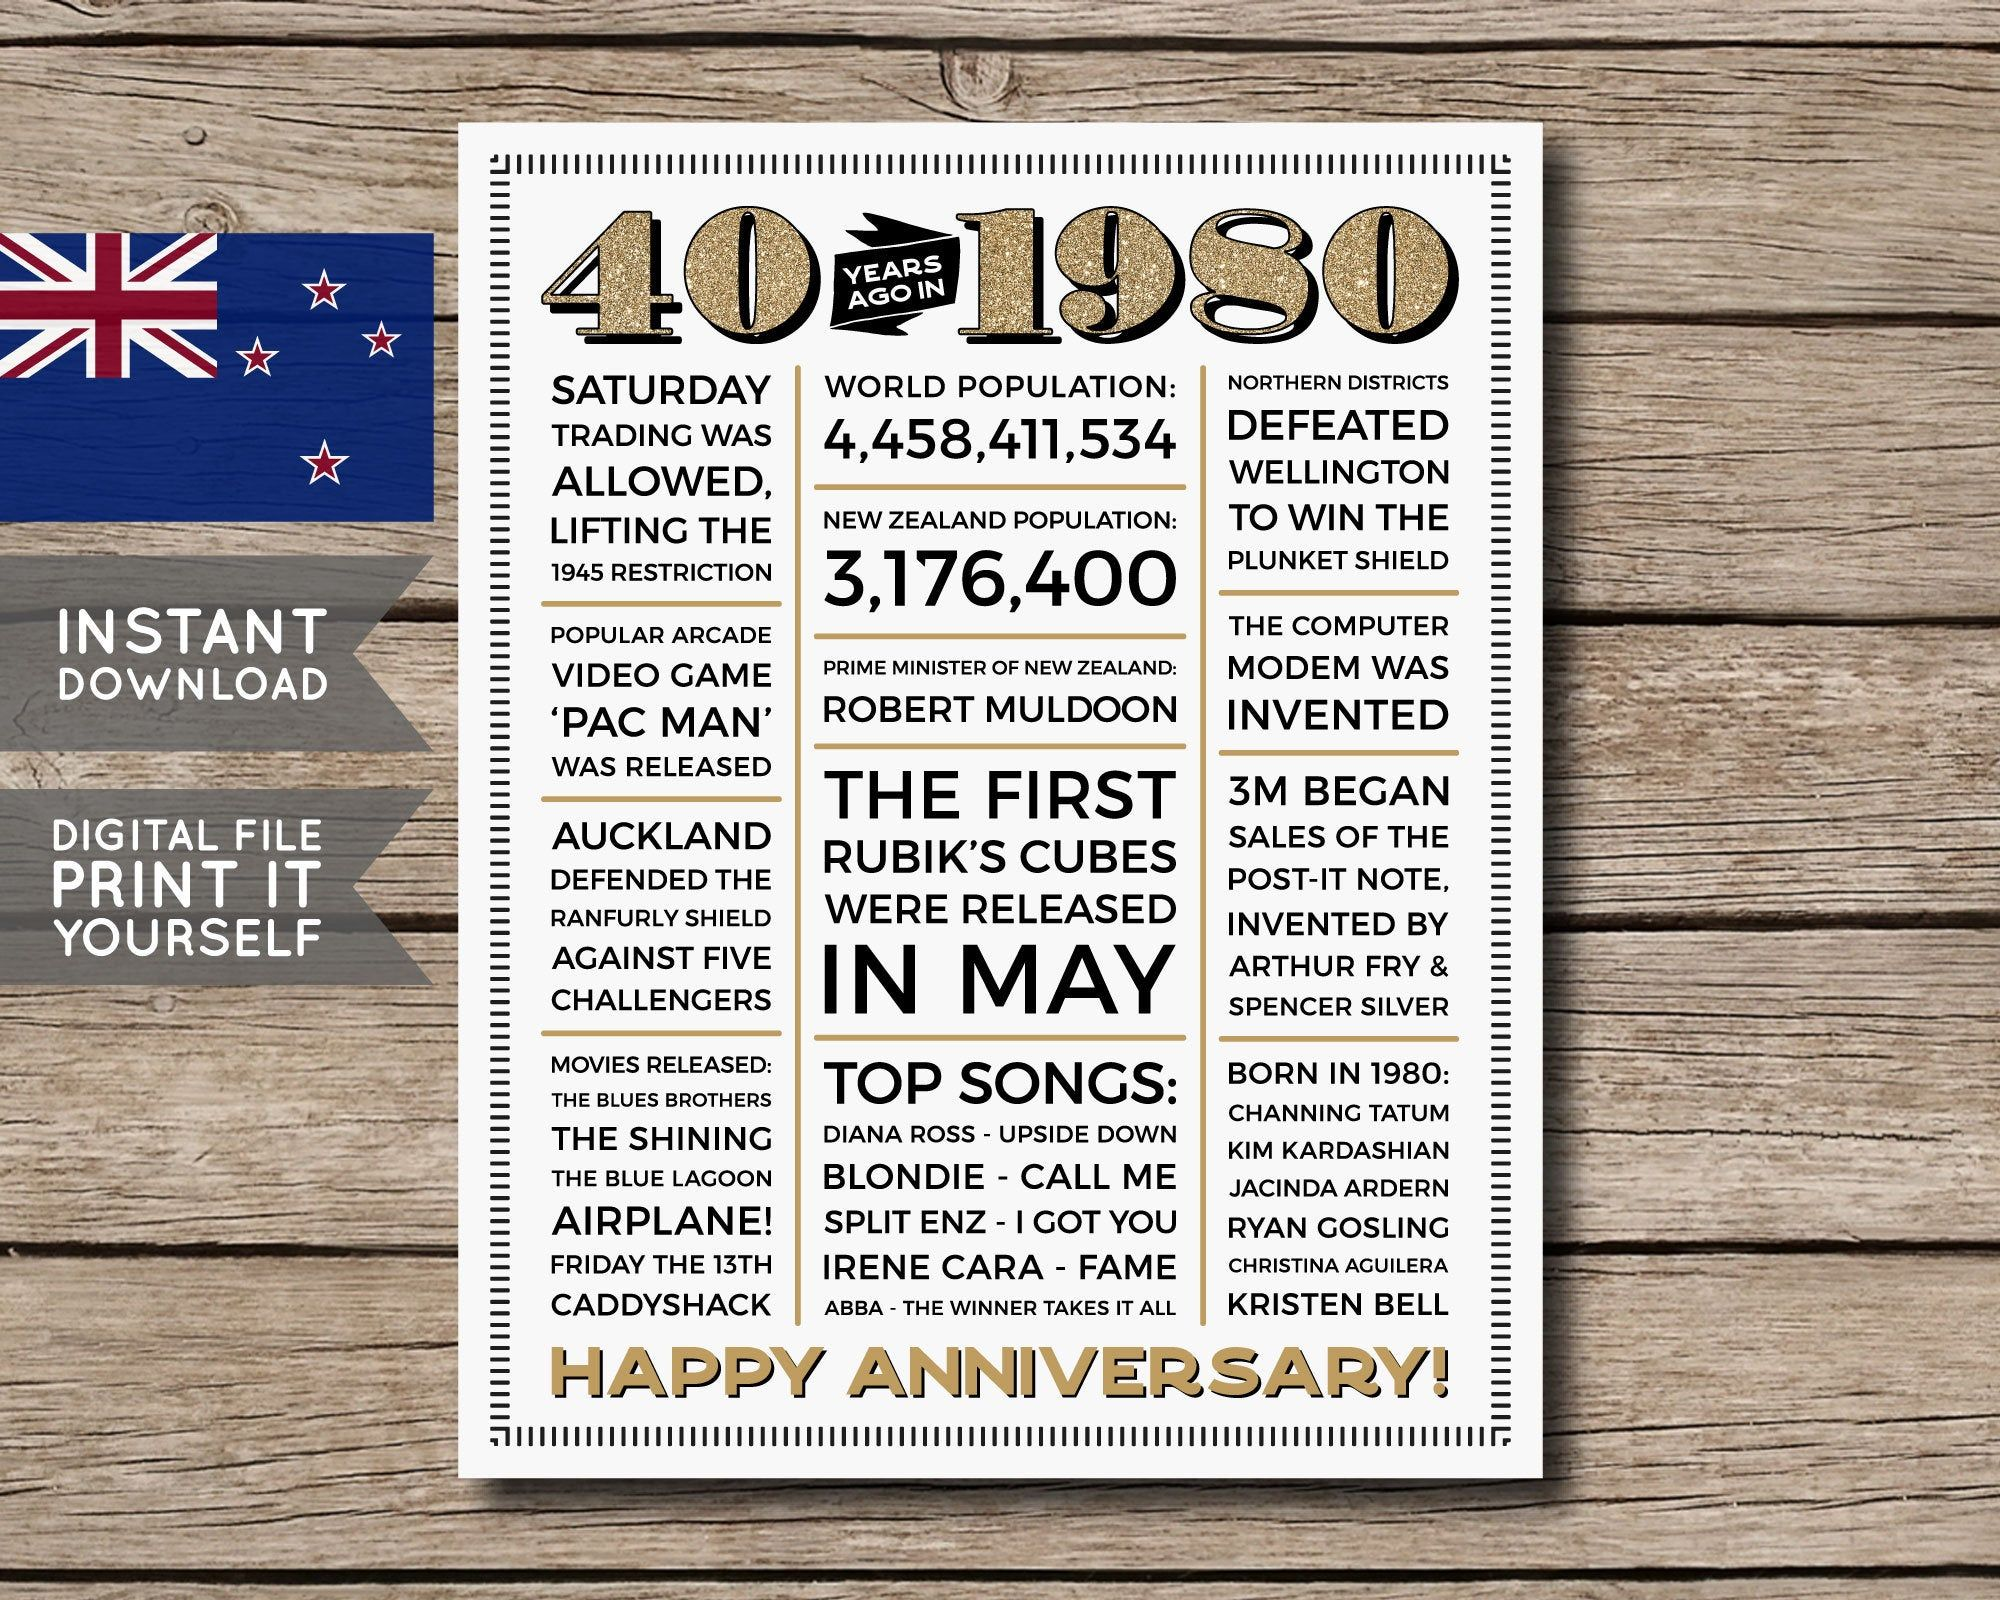 Nz 40th Anniversary Poster 40th Anniversary Gift 40th Anniversary Sign 1980 Facts Back In 1980 Printable Digital File Anniversary Sign 40th Anniversary Gifts 30th Anniversary Gifts